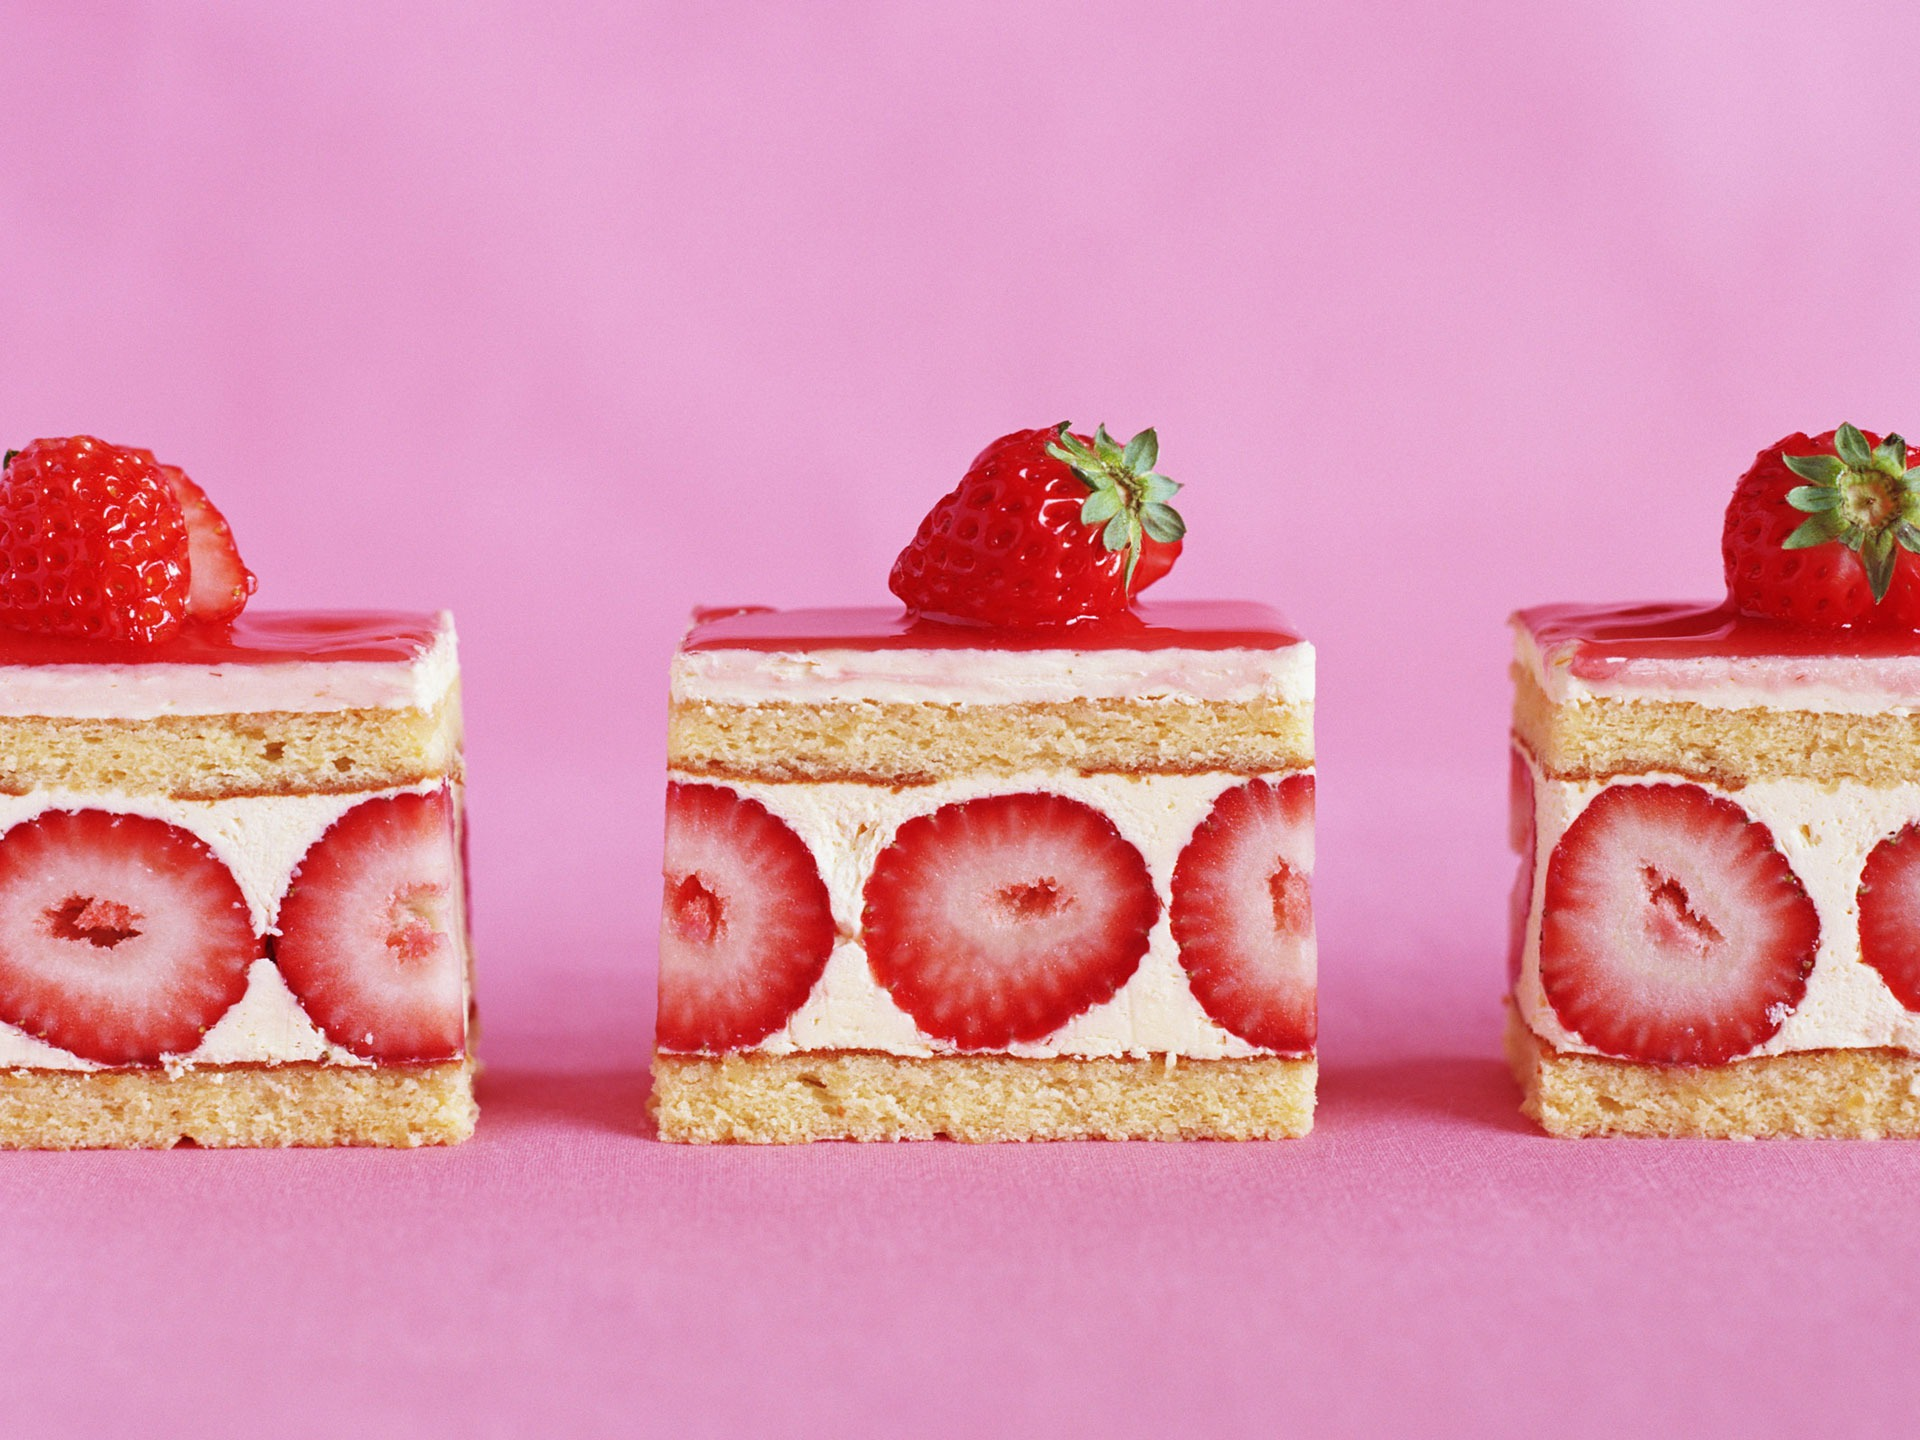 Strawberry Cake Wallpaper Miscellaneous Other Wallpapers in jpg